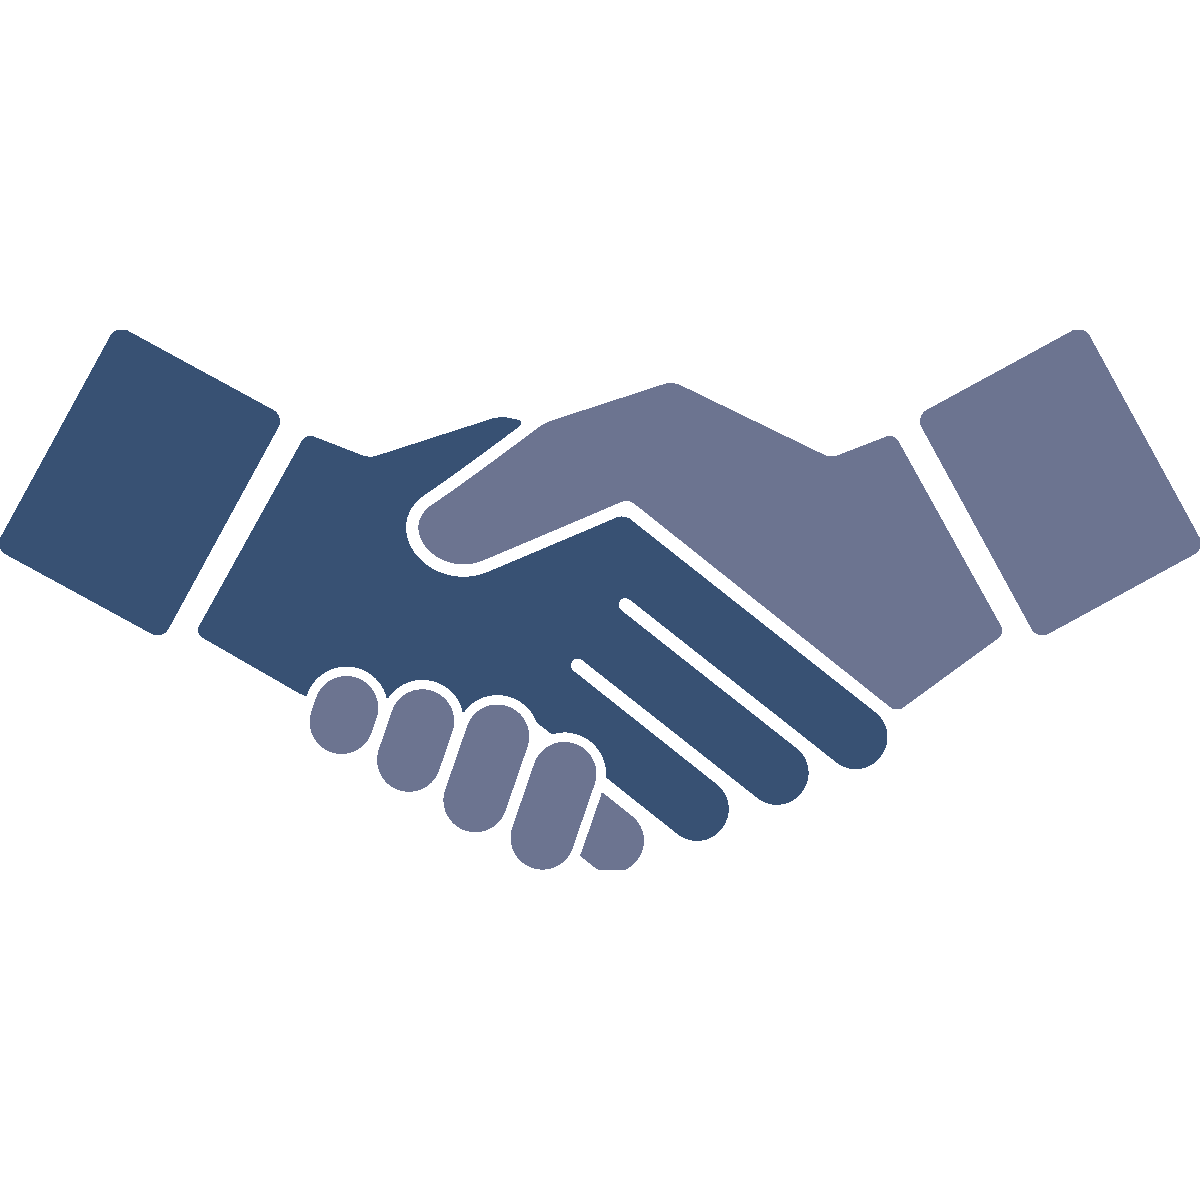 Handshake clipart joint venture. Experience and resources thomas